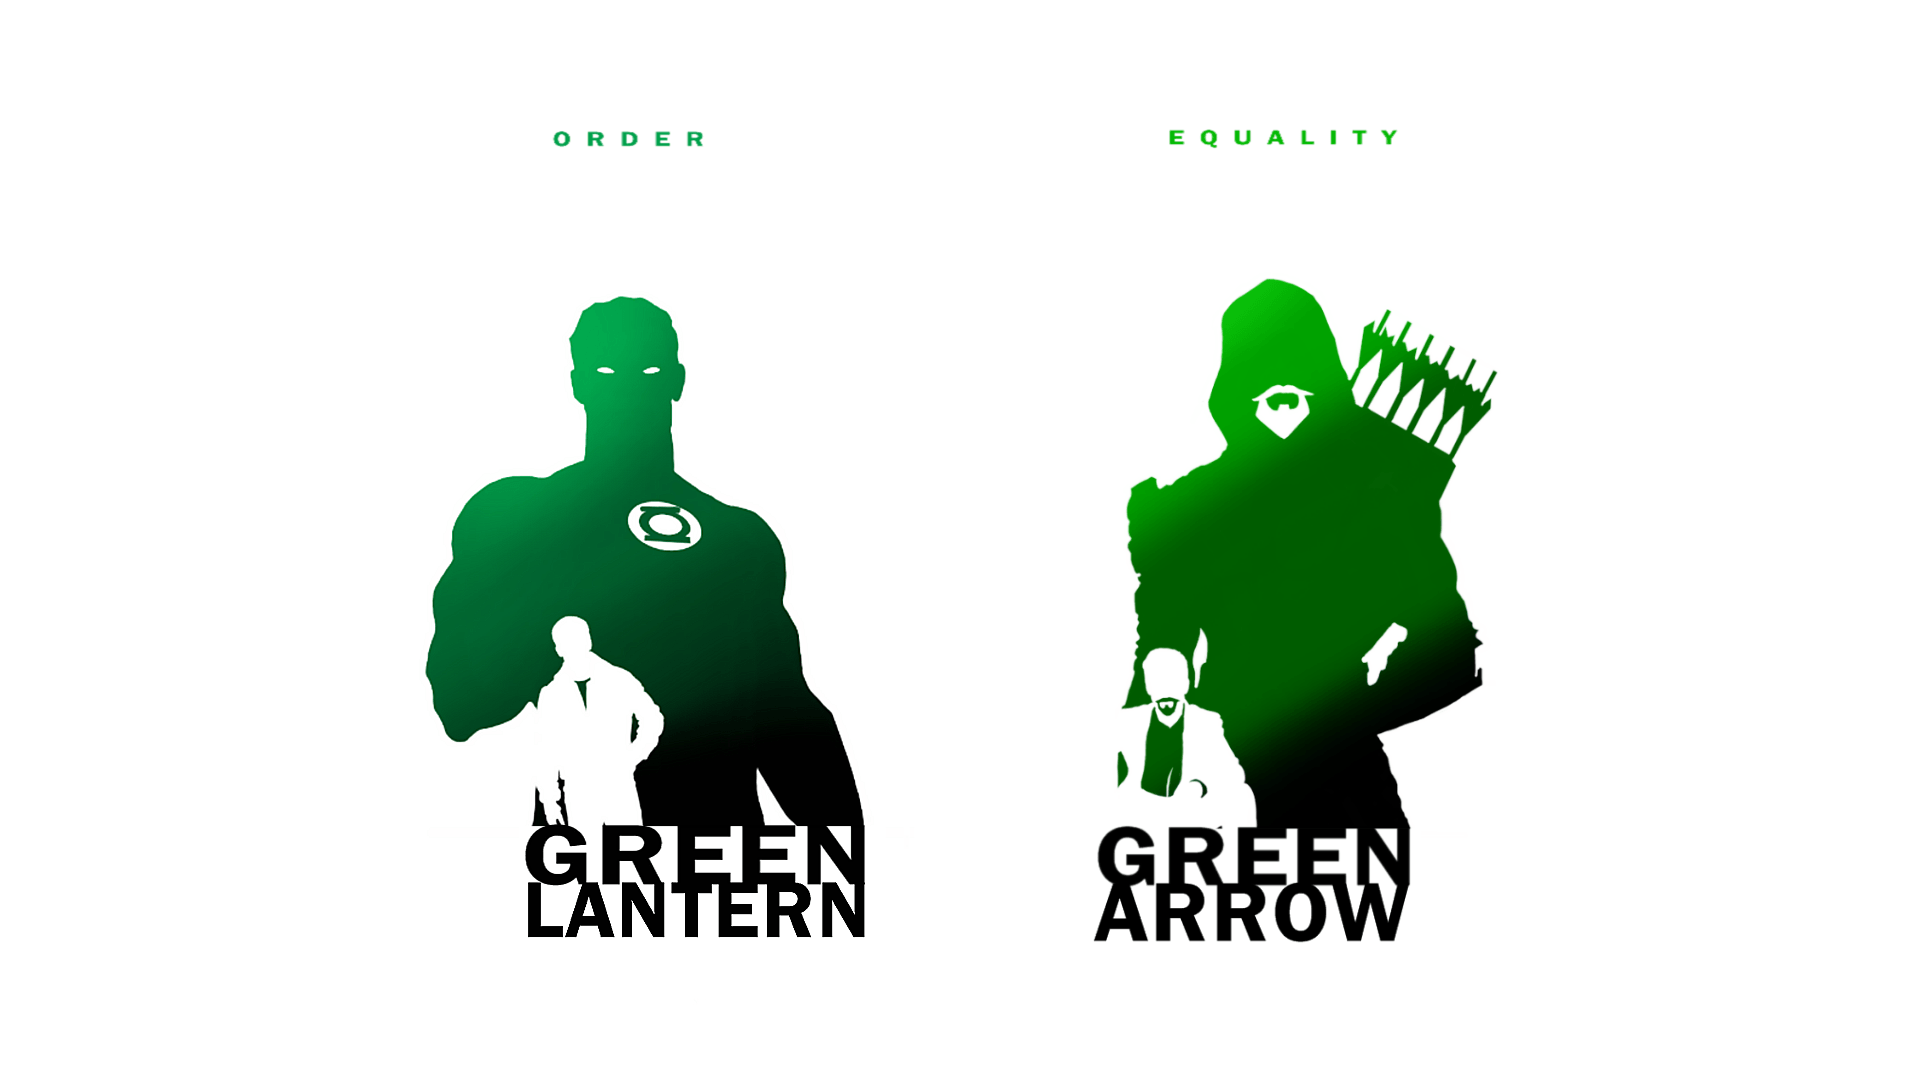 Image For > Green Arrow Hd Wallpapers